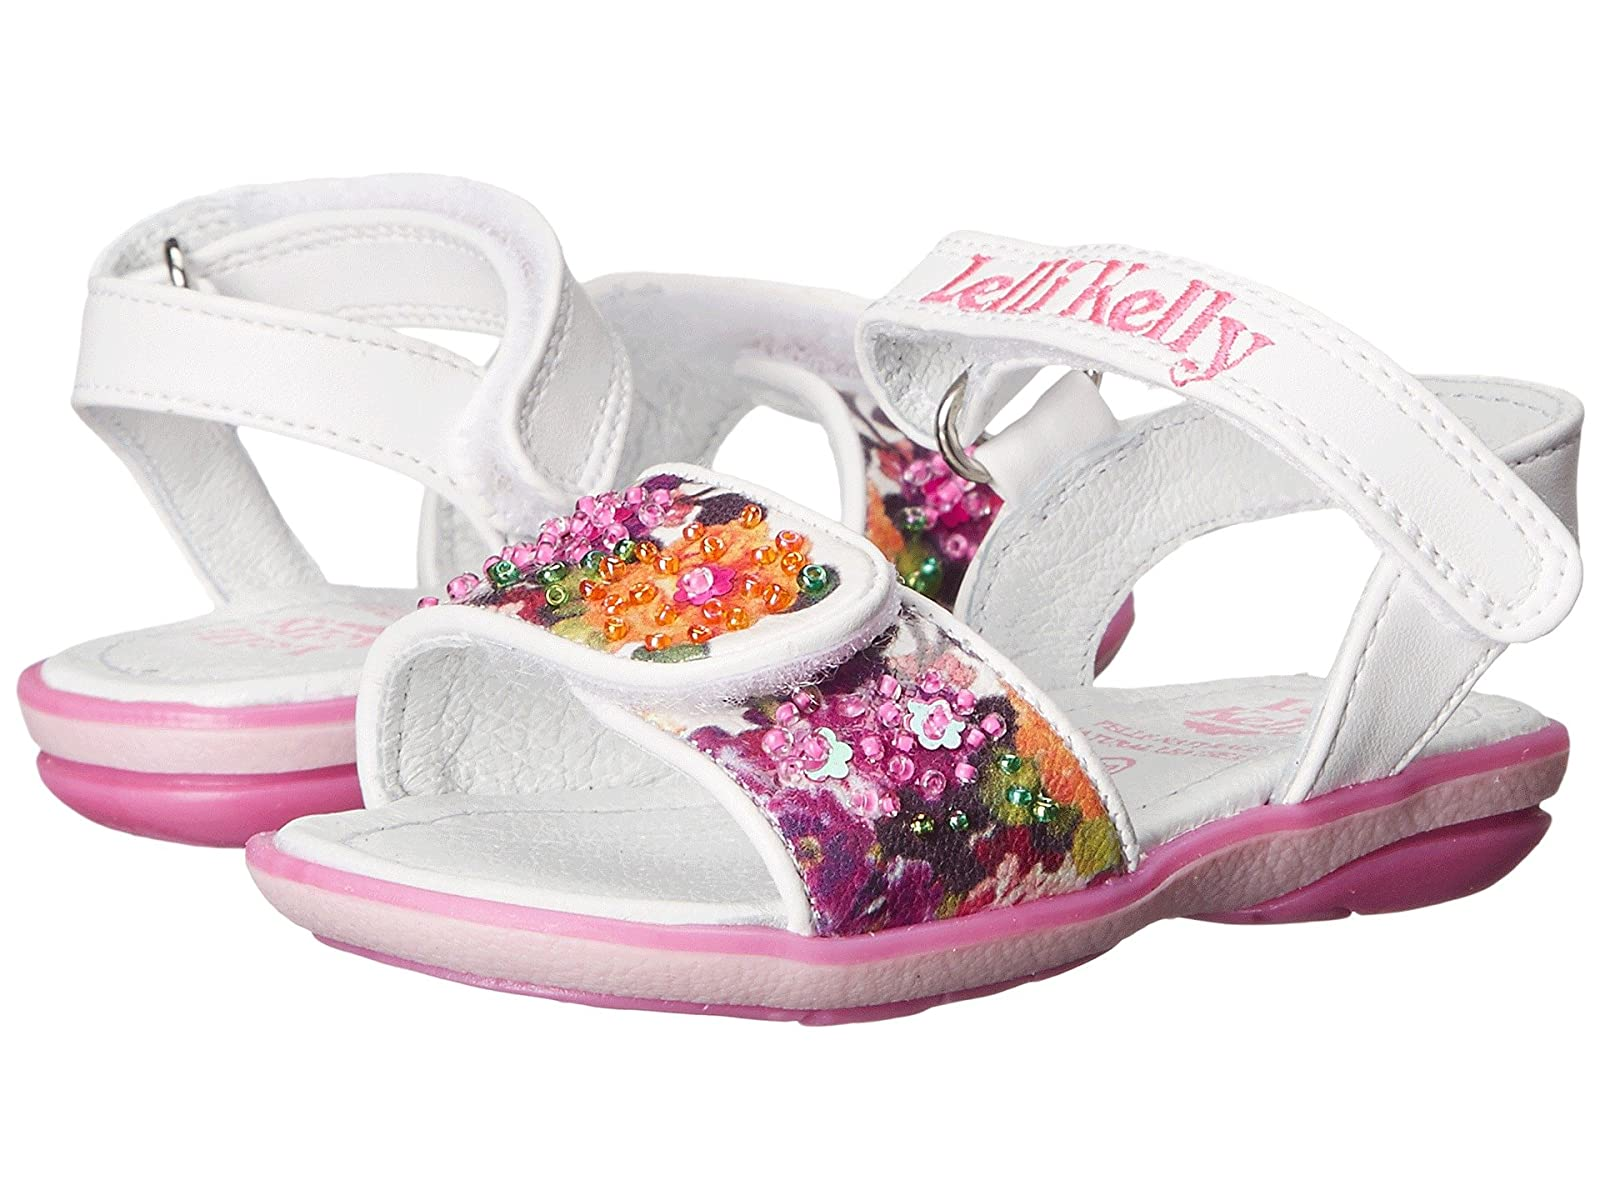 Lelli Kelly Kids Bella Sandal Kid) (Toddler/Little Kid) Sandal 0d92bf